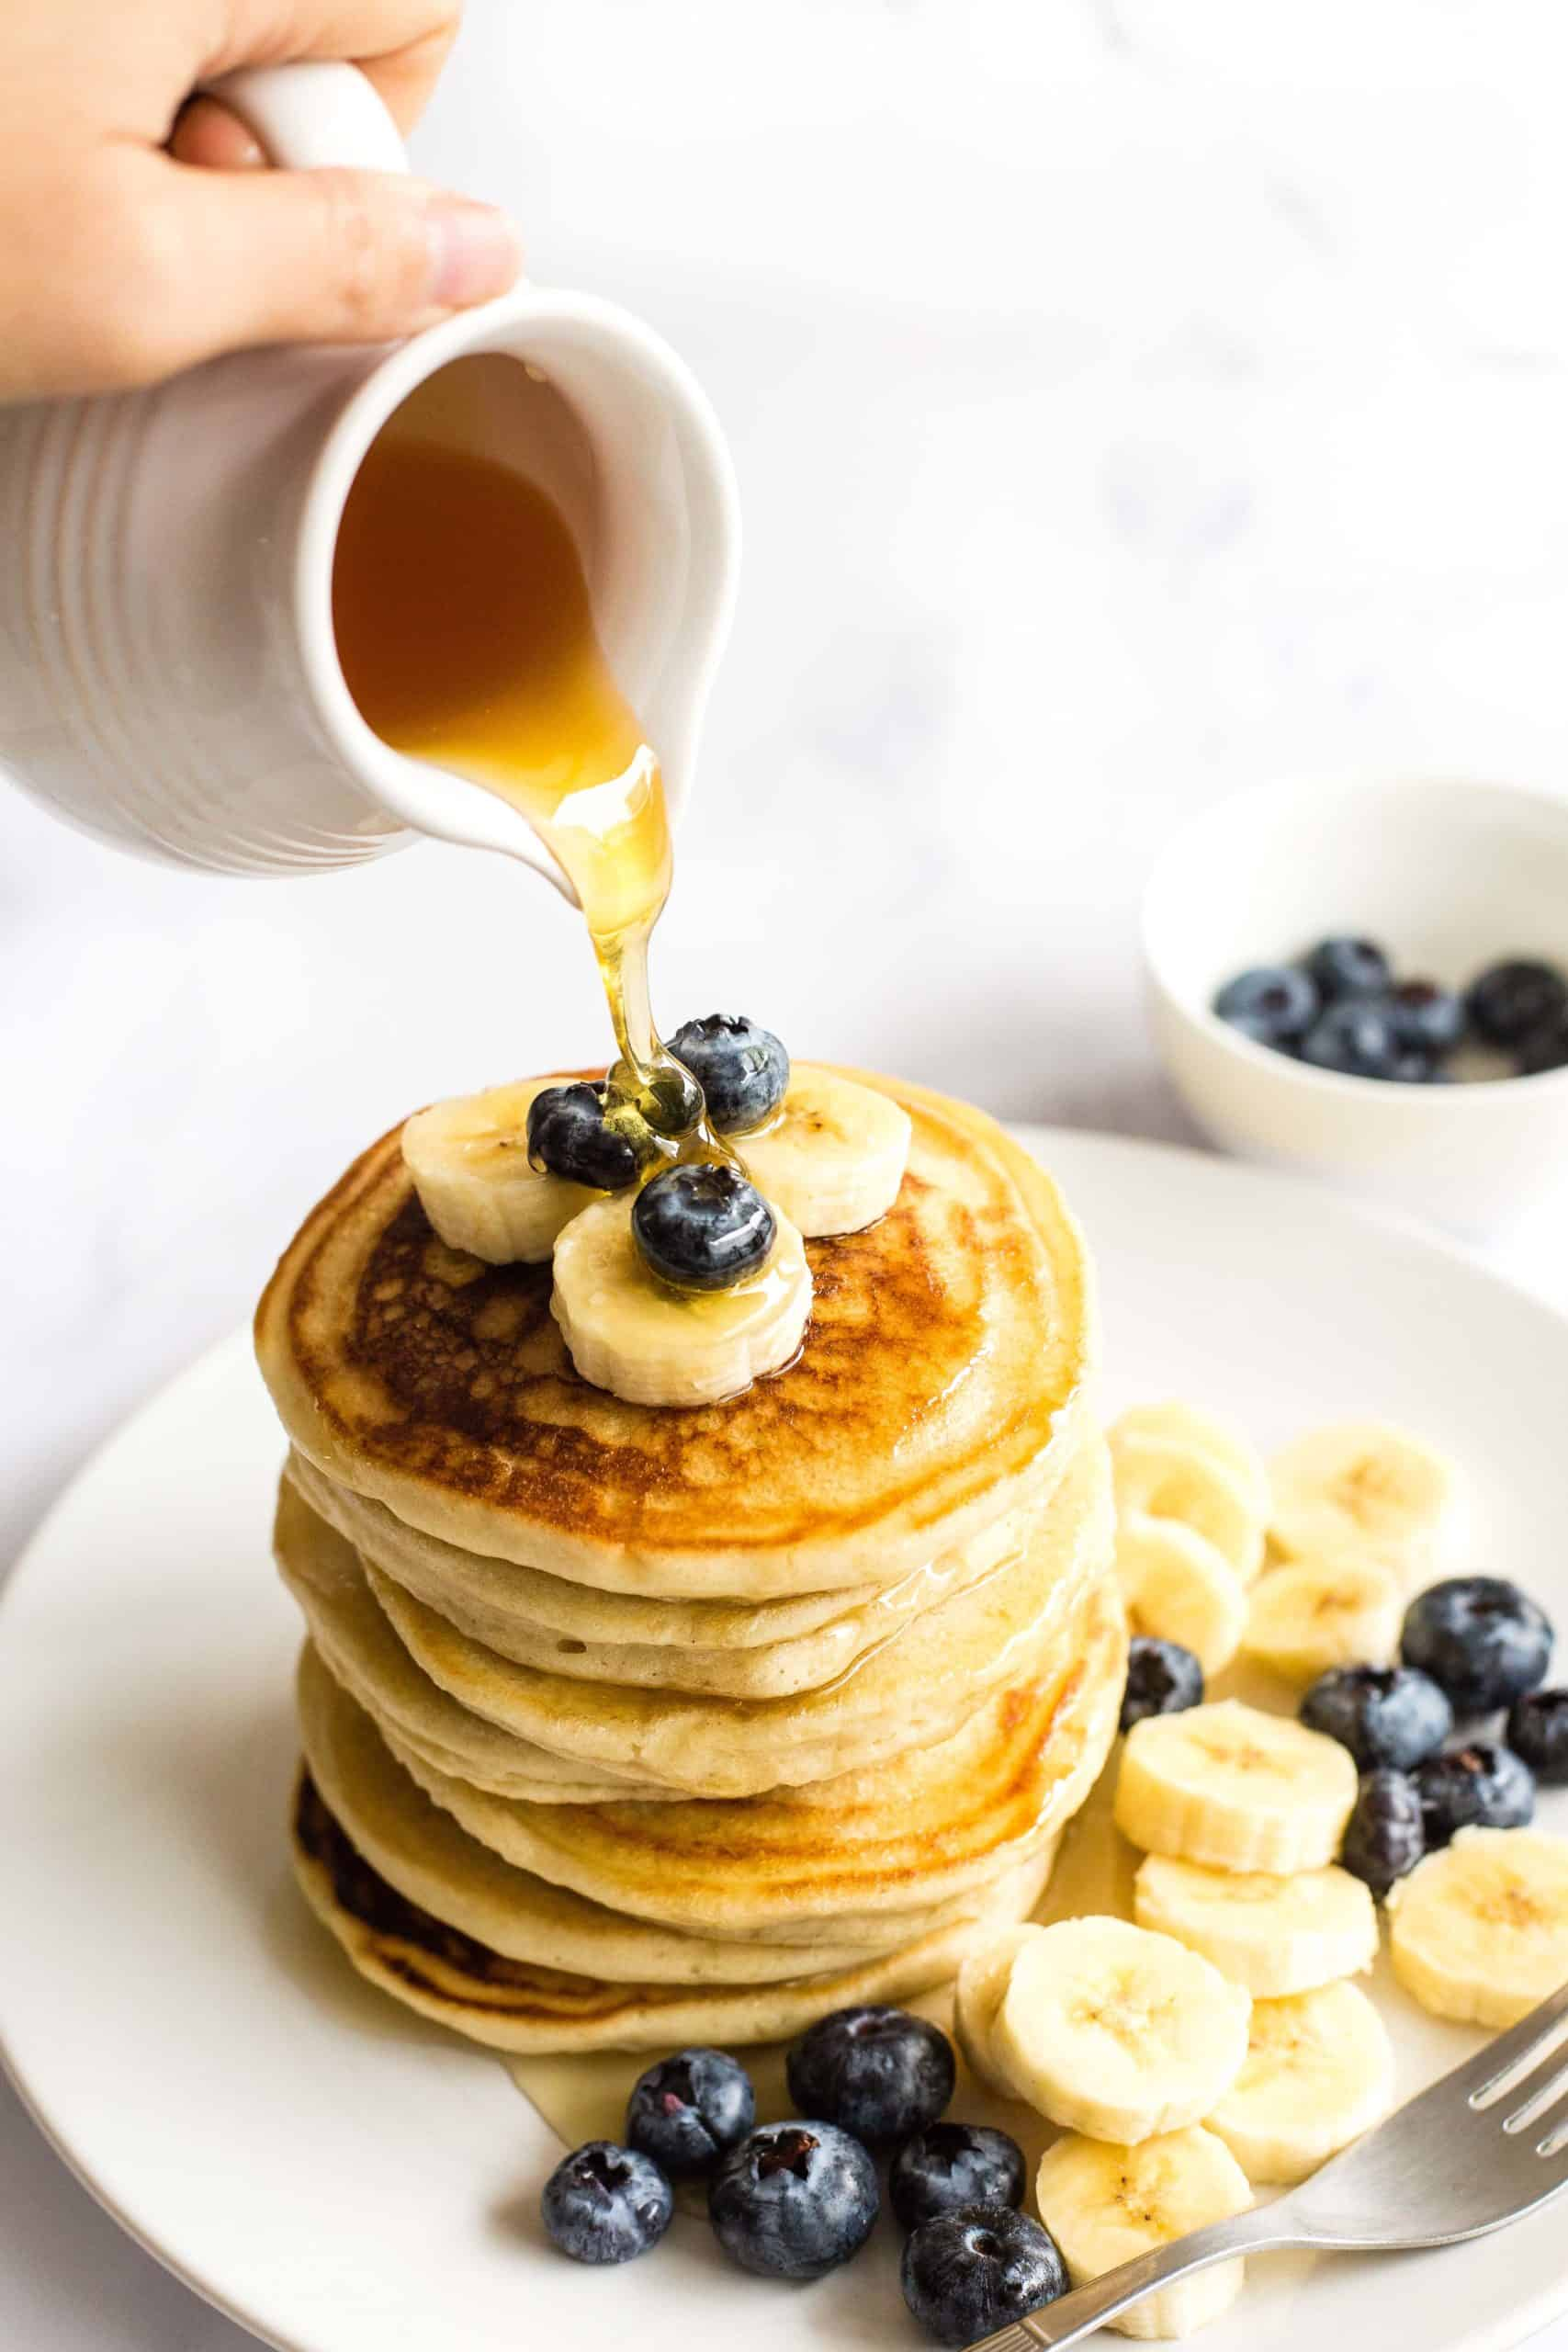 Hand pouring maple syrup over a stack of fluffy gluten-free pancakes.